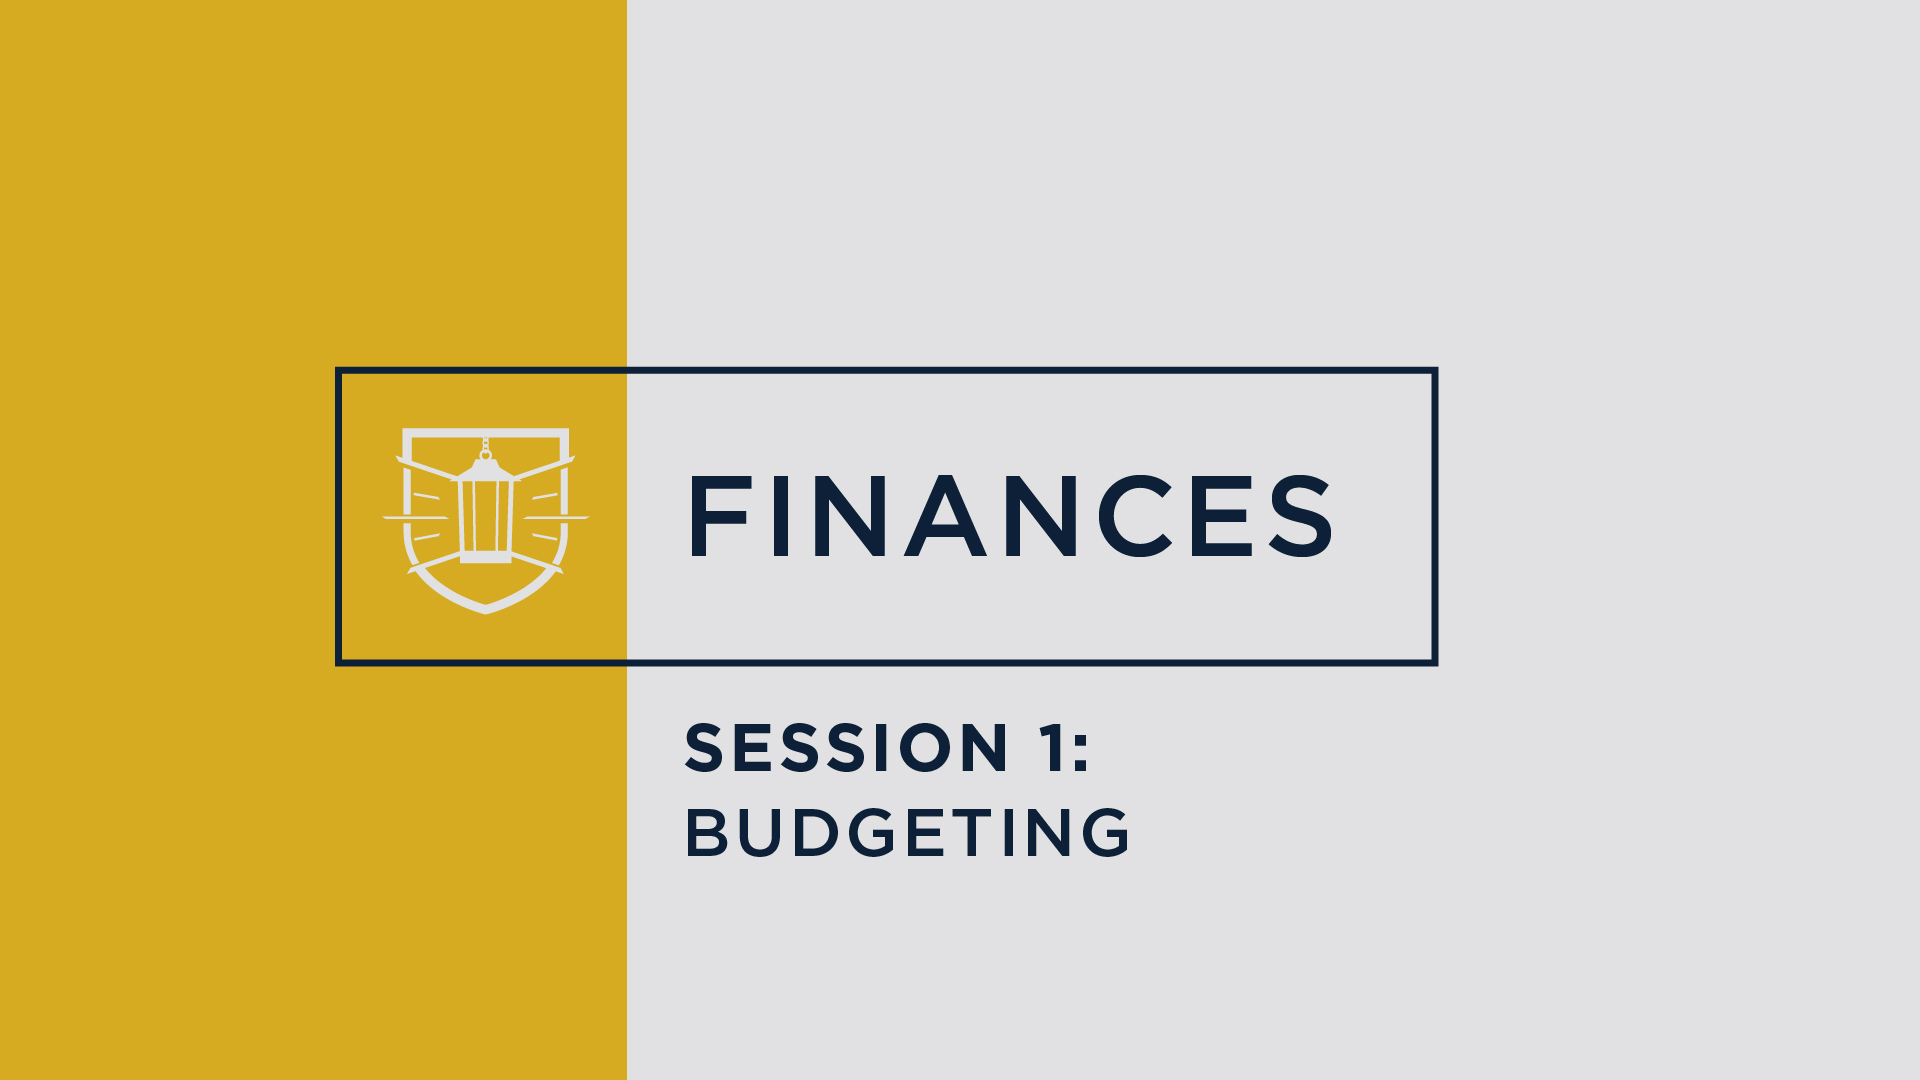 Finances 1: Budgeting